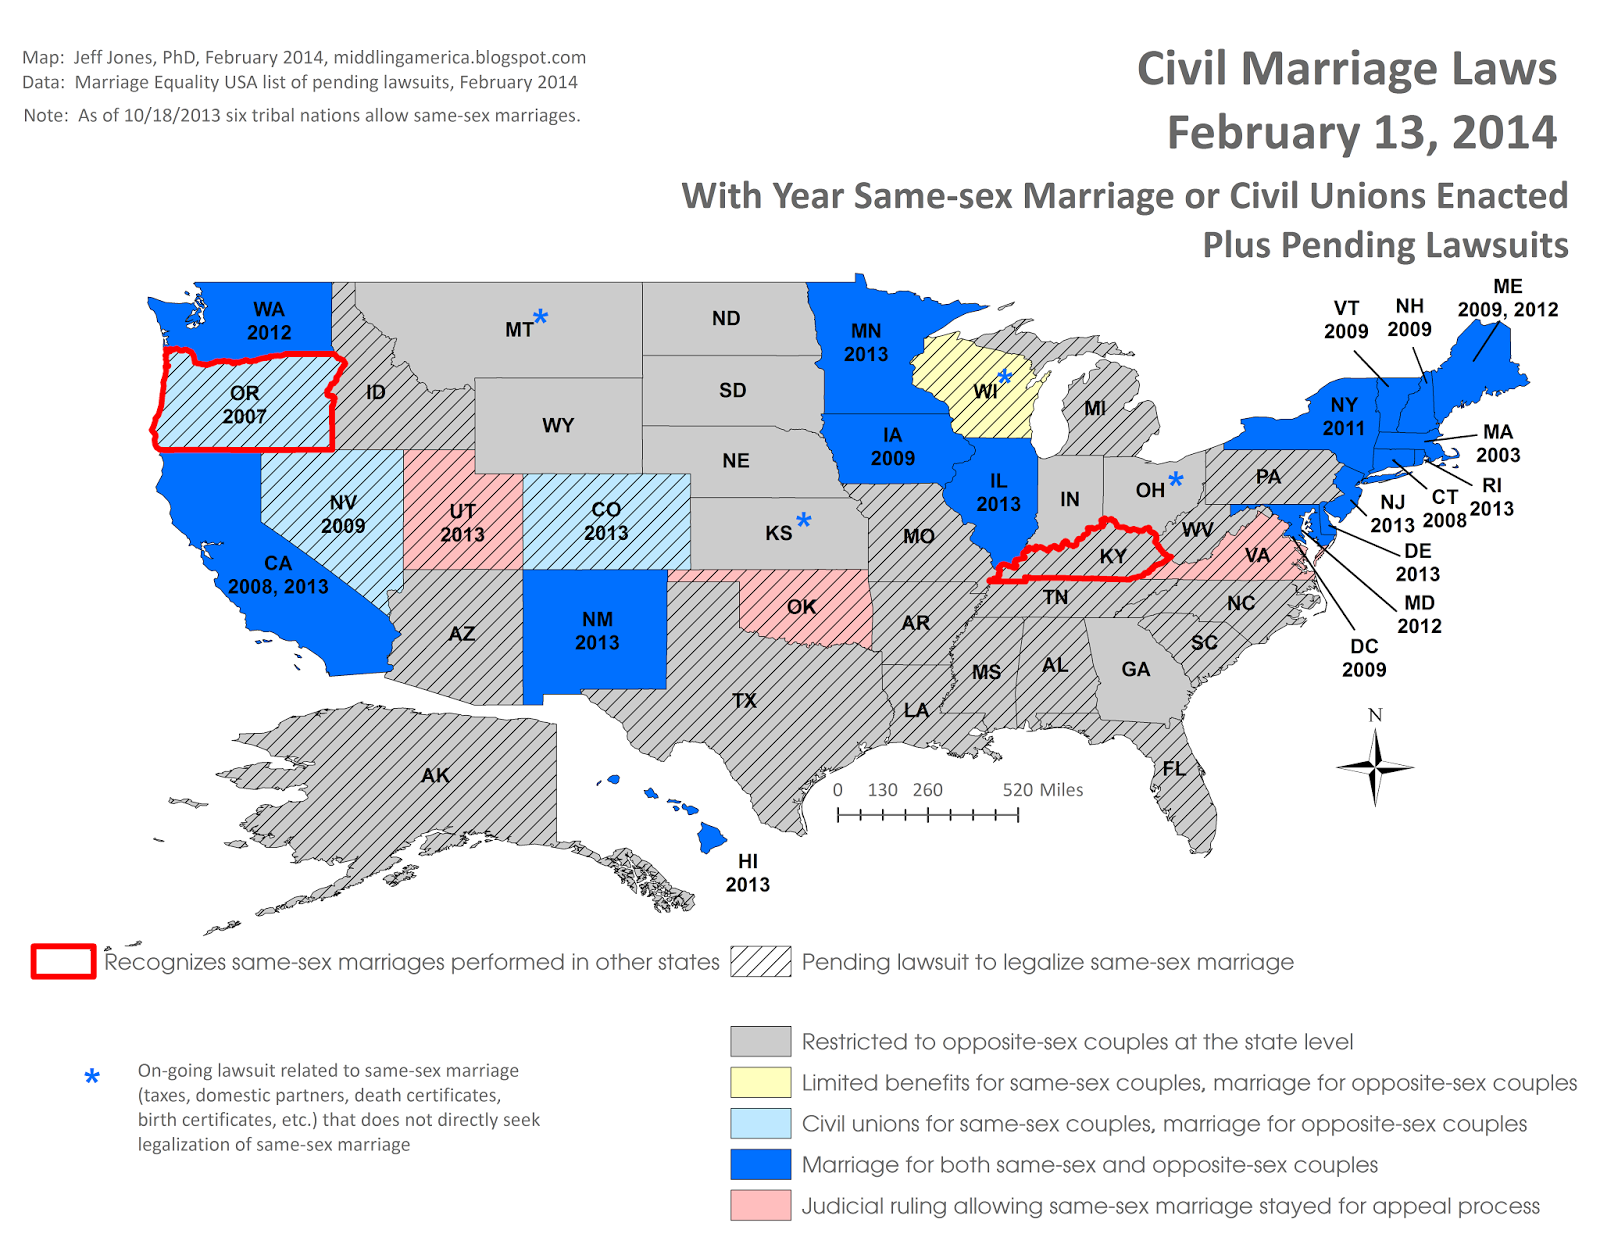 Middling America: UPDATE: Civil Marriage Laws Map on modernism map, metaphysical map, inbreeding map, doctrine map, birth control map, 9gag map, love wins map, food issues map, life calling map, lawyers map, heredity map, stages of life map, addiction map, sovereignty map, numerology map, new moon map, long trip map, family interaction map, middle class map,